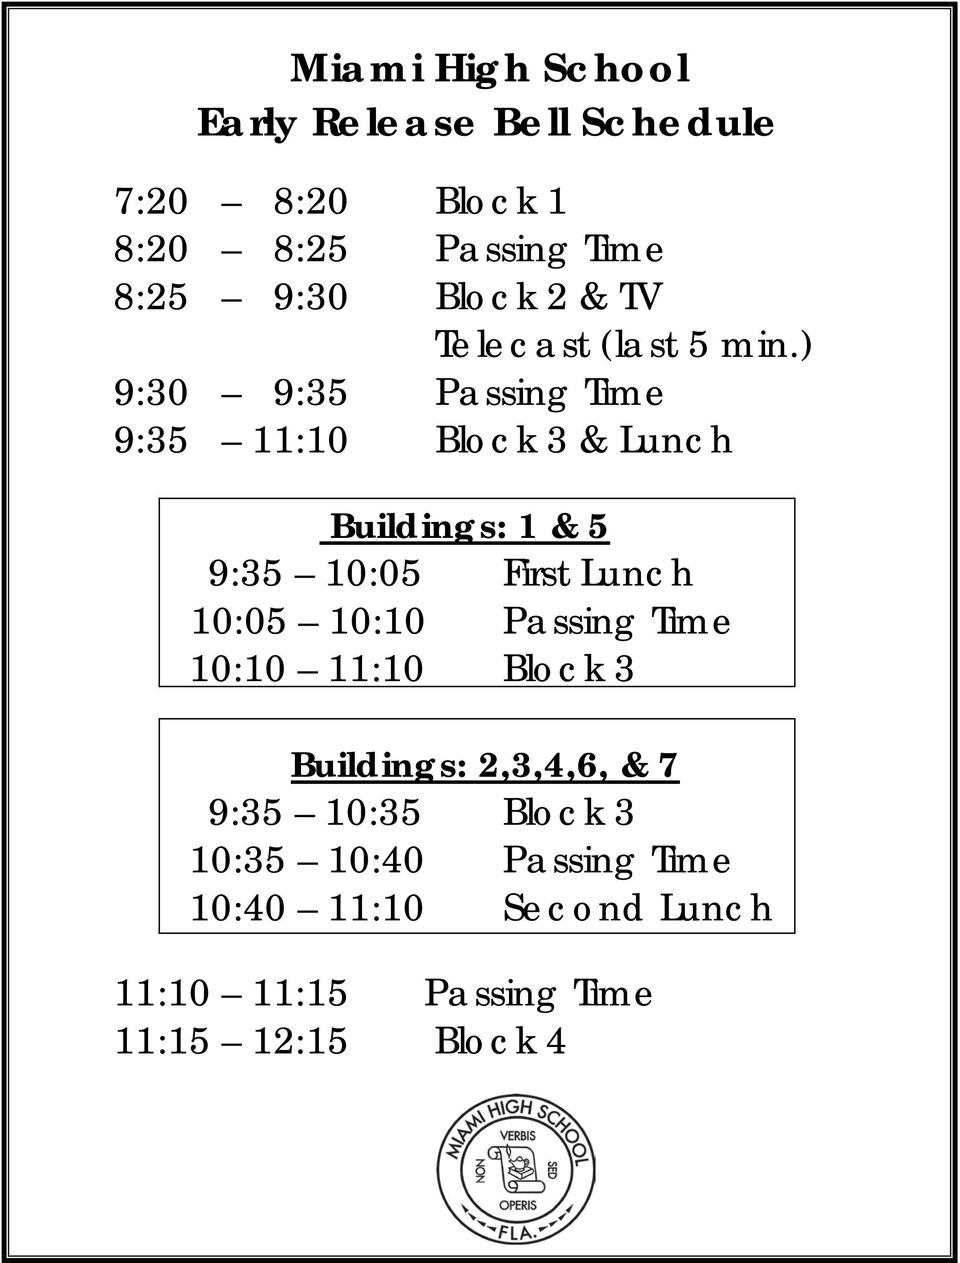 ) 9:30 9:35 Passing Time 9:35 11:10 Block 3 & Lunch Buildings: 1 & 5 9:35 10:05 First Lunch 10:05